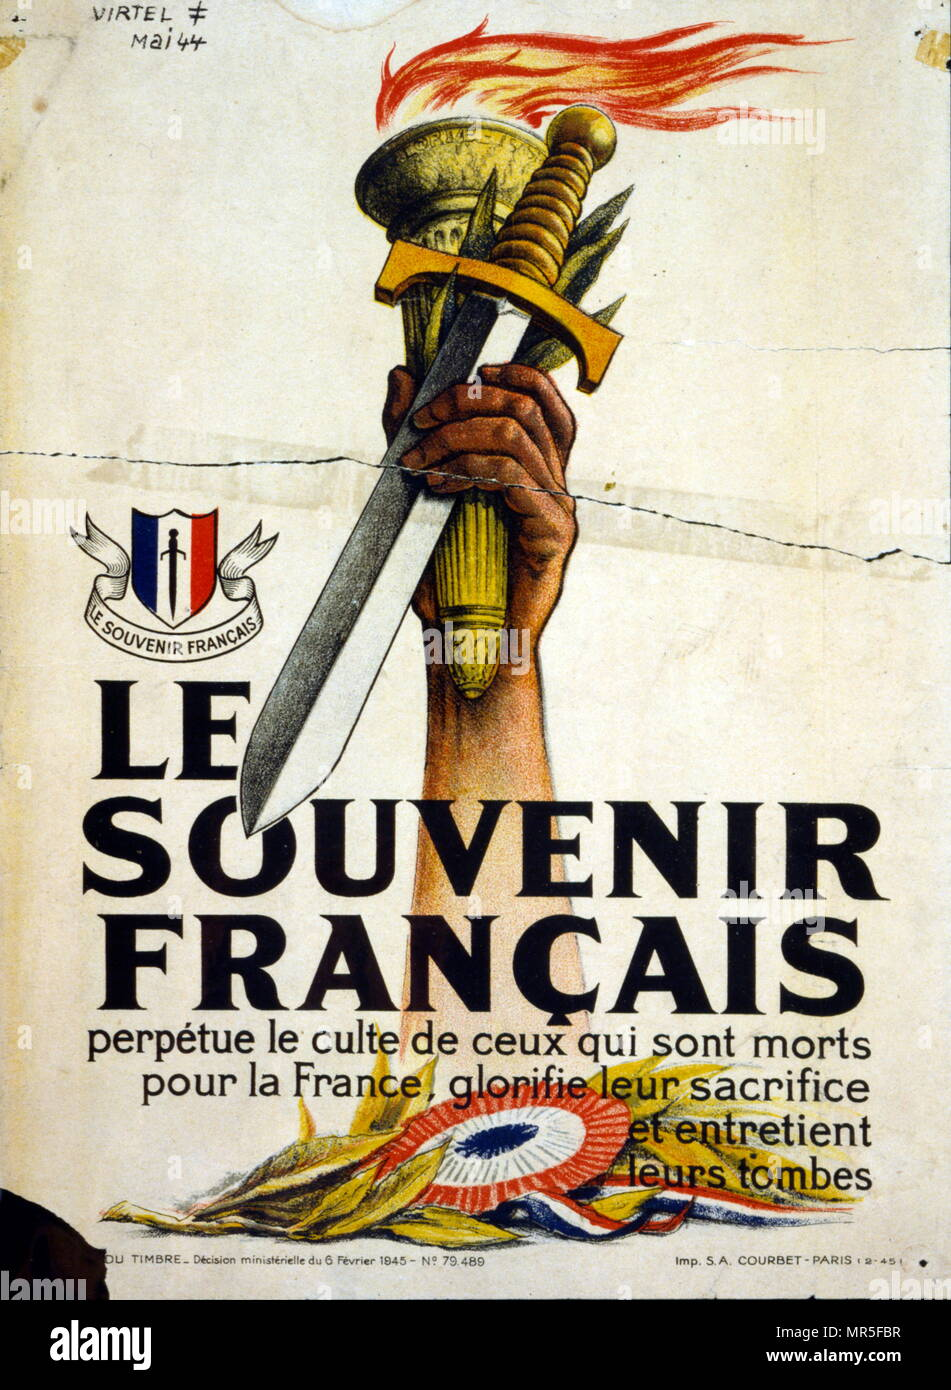 Propaganda poster issued by the Vichy French government to commemorate war dead. February 1944 - Stock Image